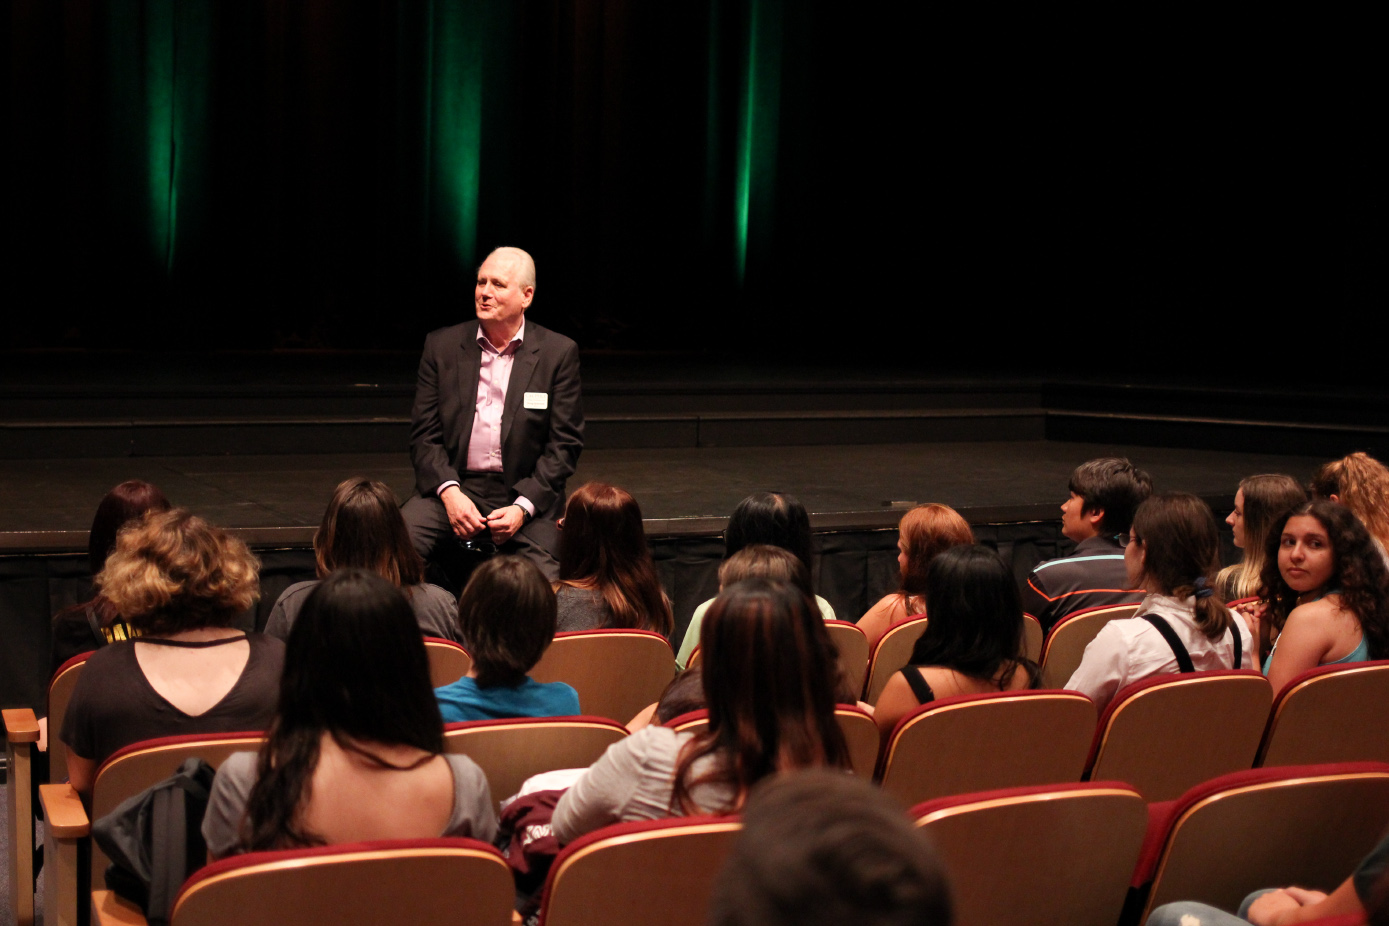 The dean welcomes students to an event celebrating diversity